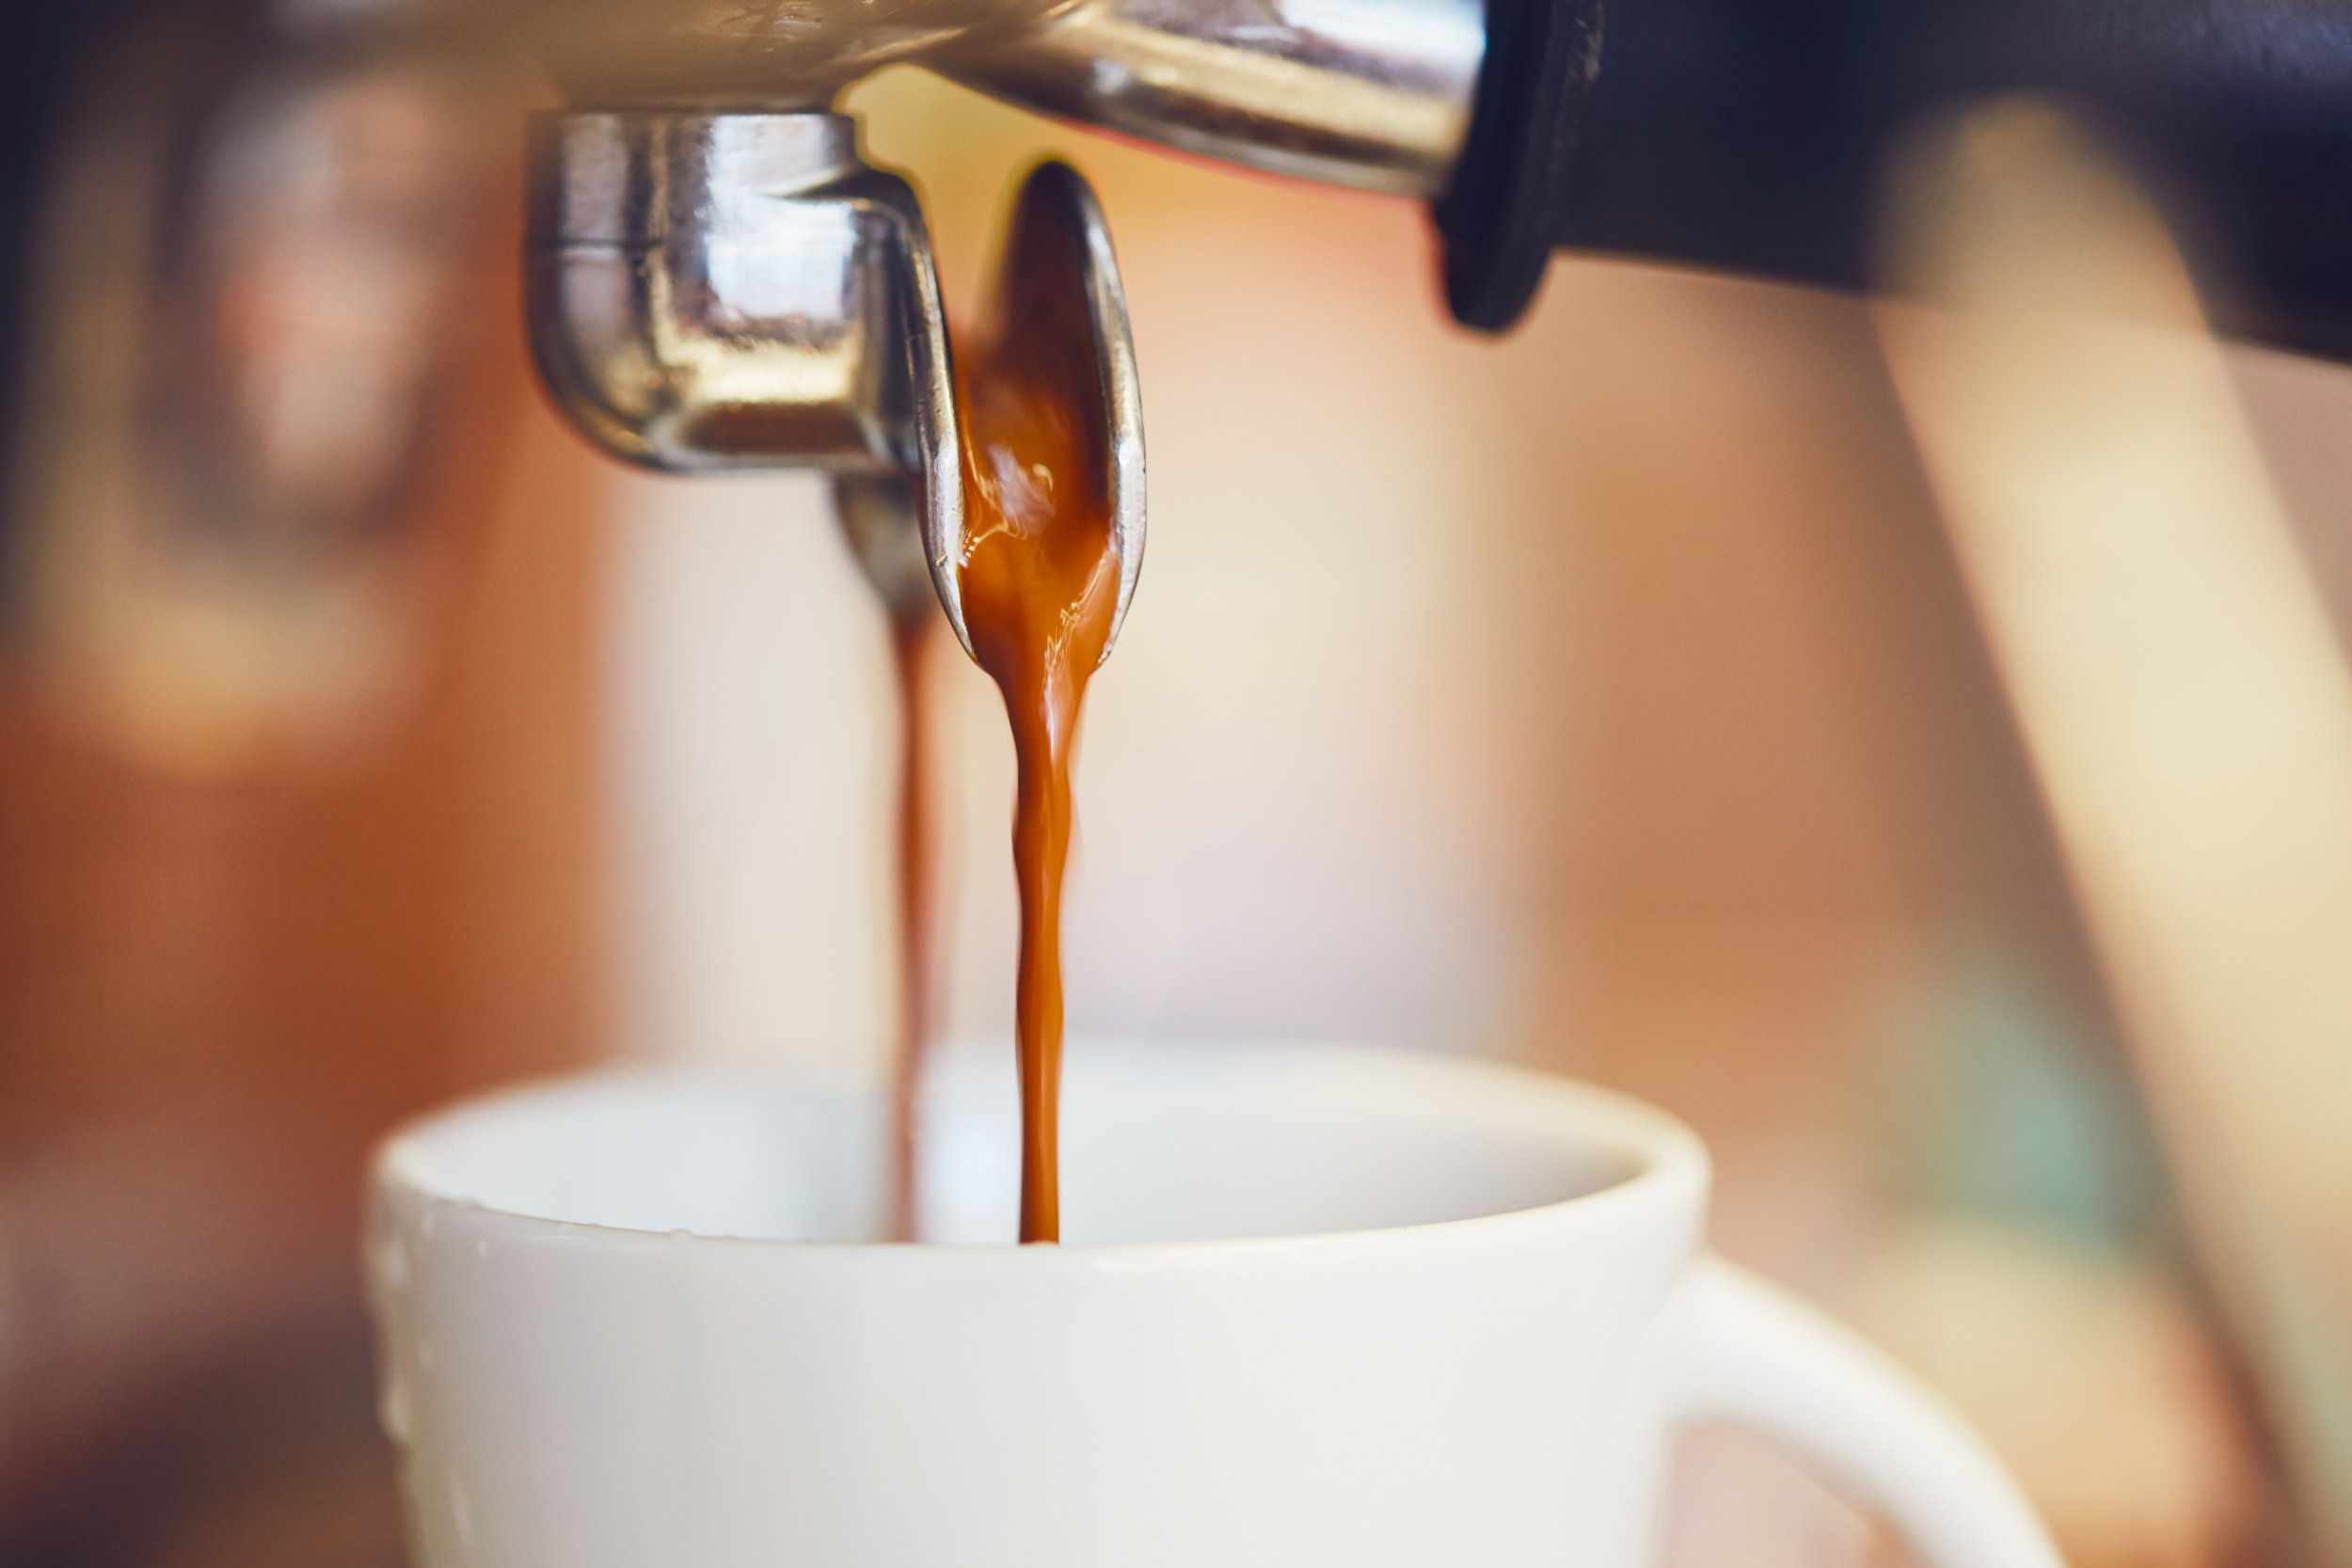 US military research reveals best way to drink coffee for peak alertness